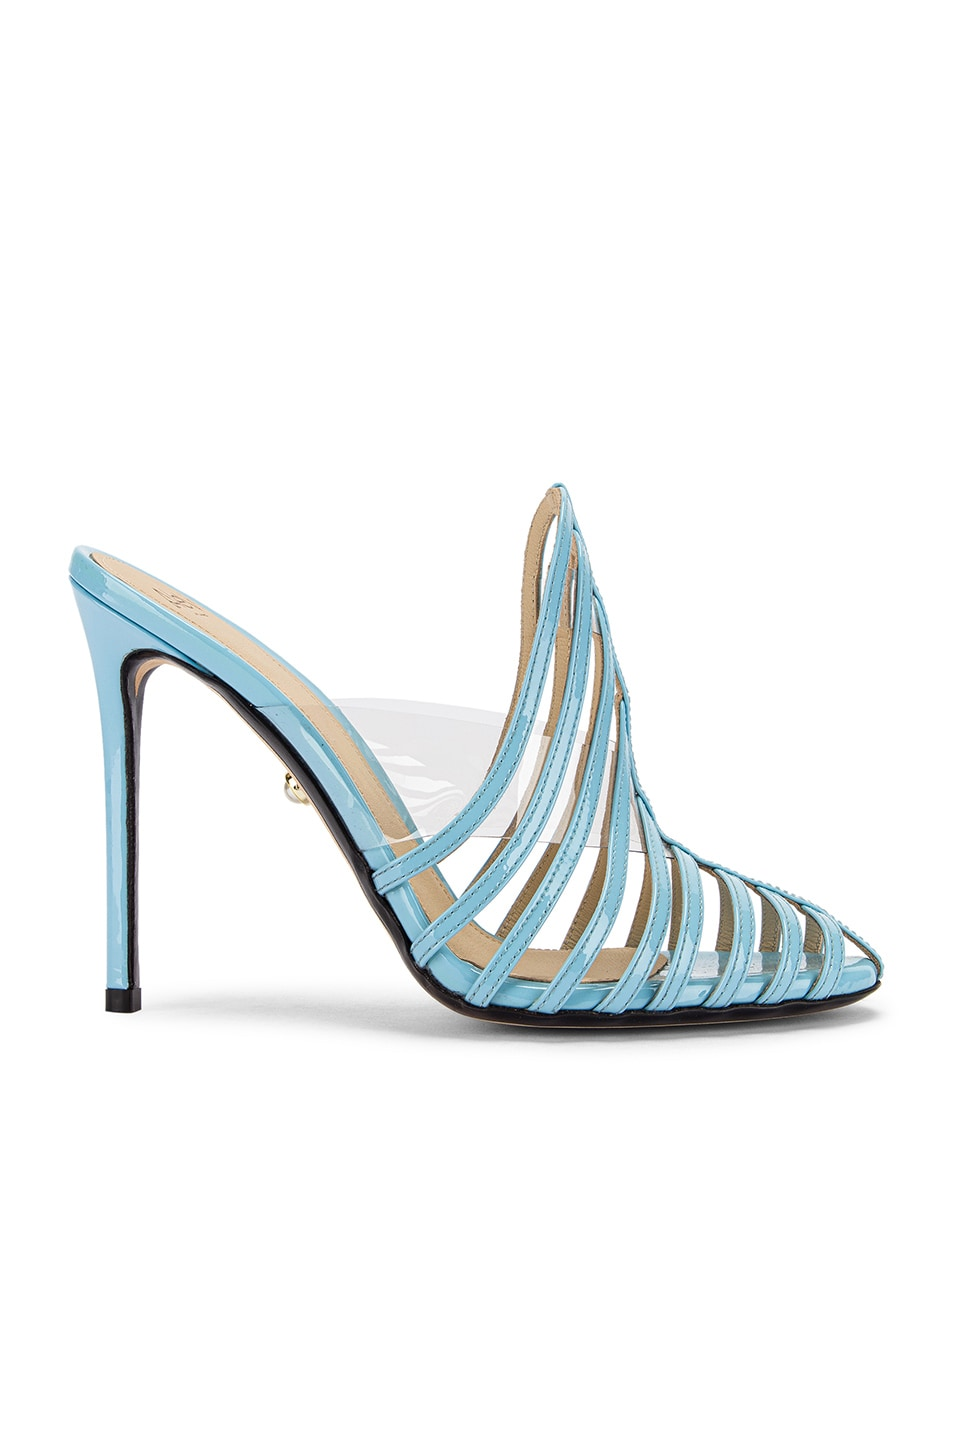 Image 1 of ALEVI Milano Alessandra Mule in Patent Sky